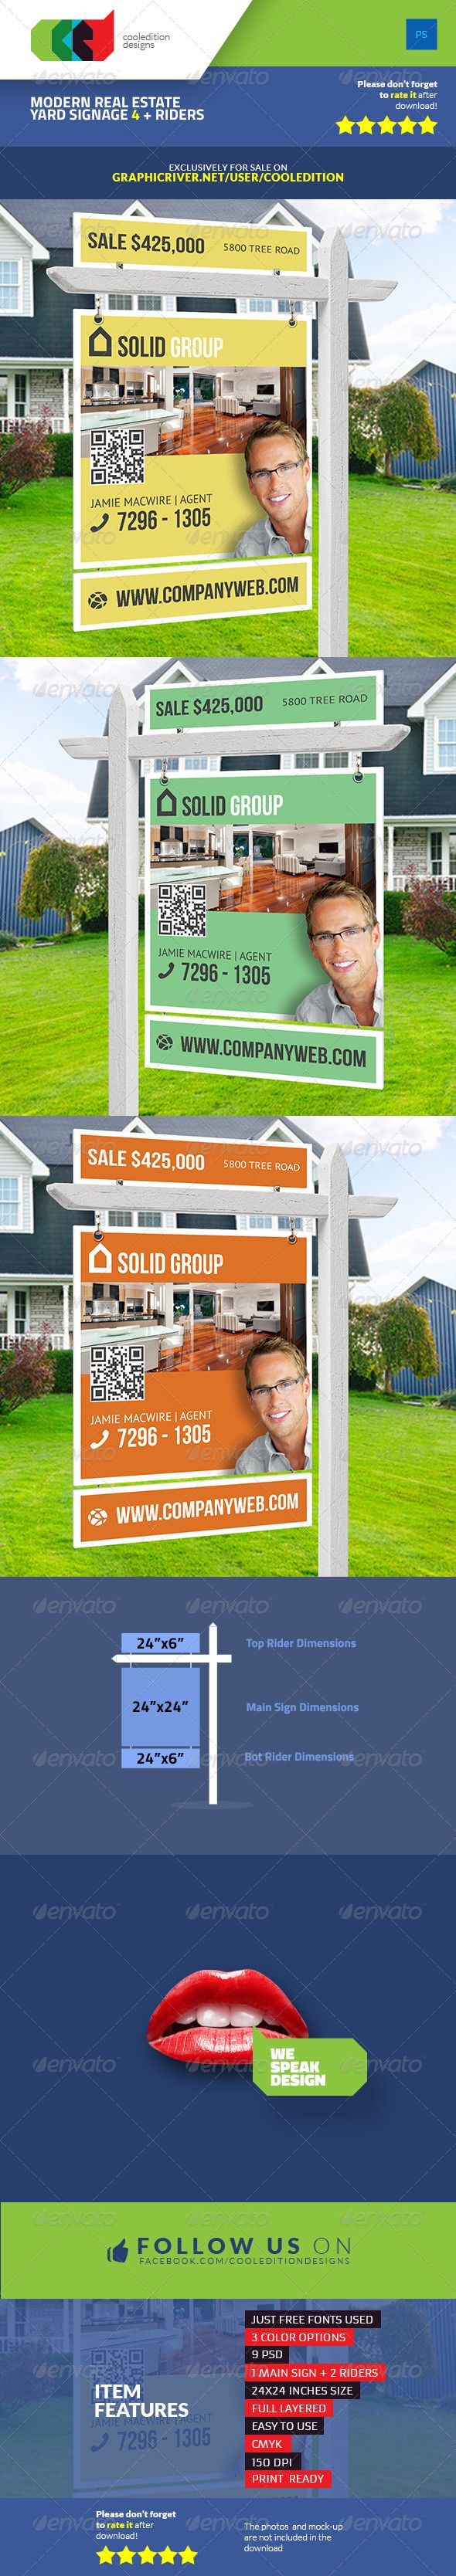 Modern Real Estate Yard Signage 4 + Riders - $6